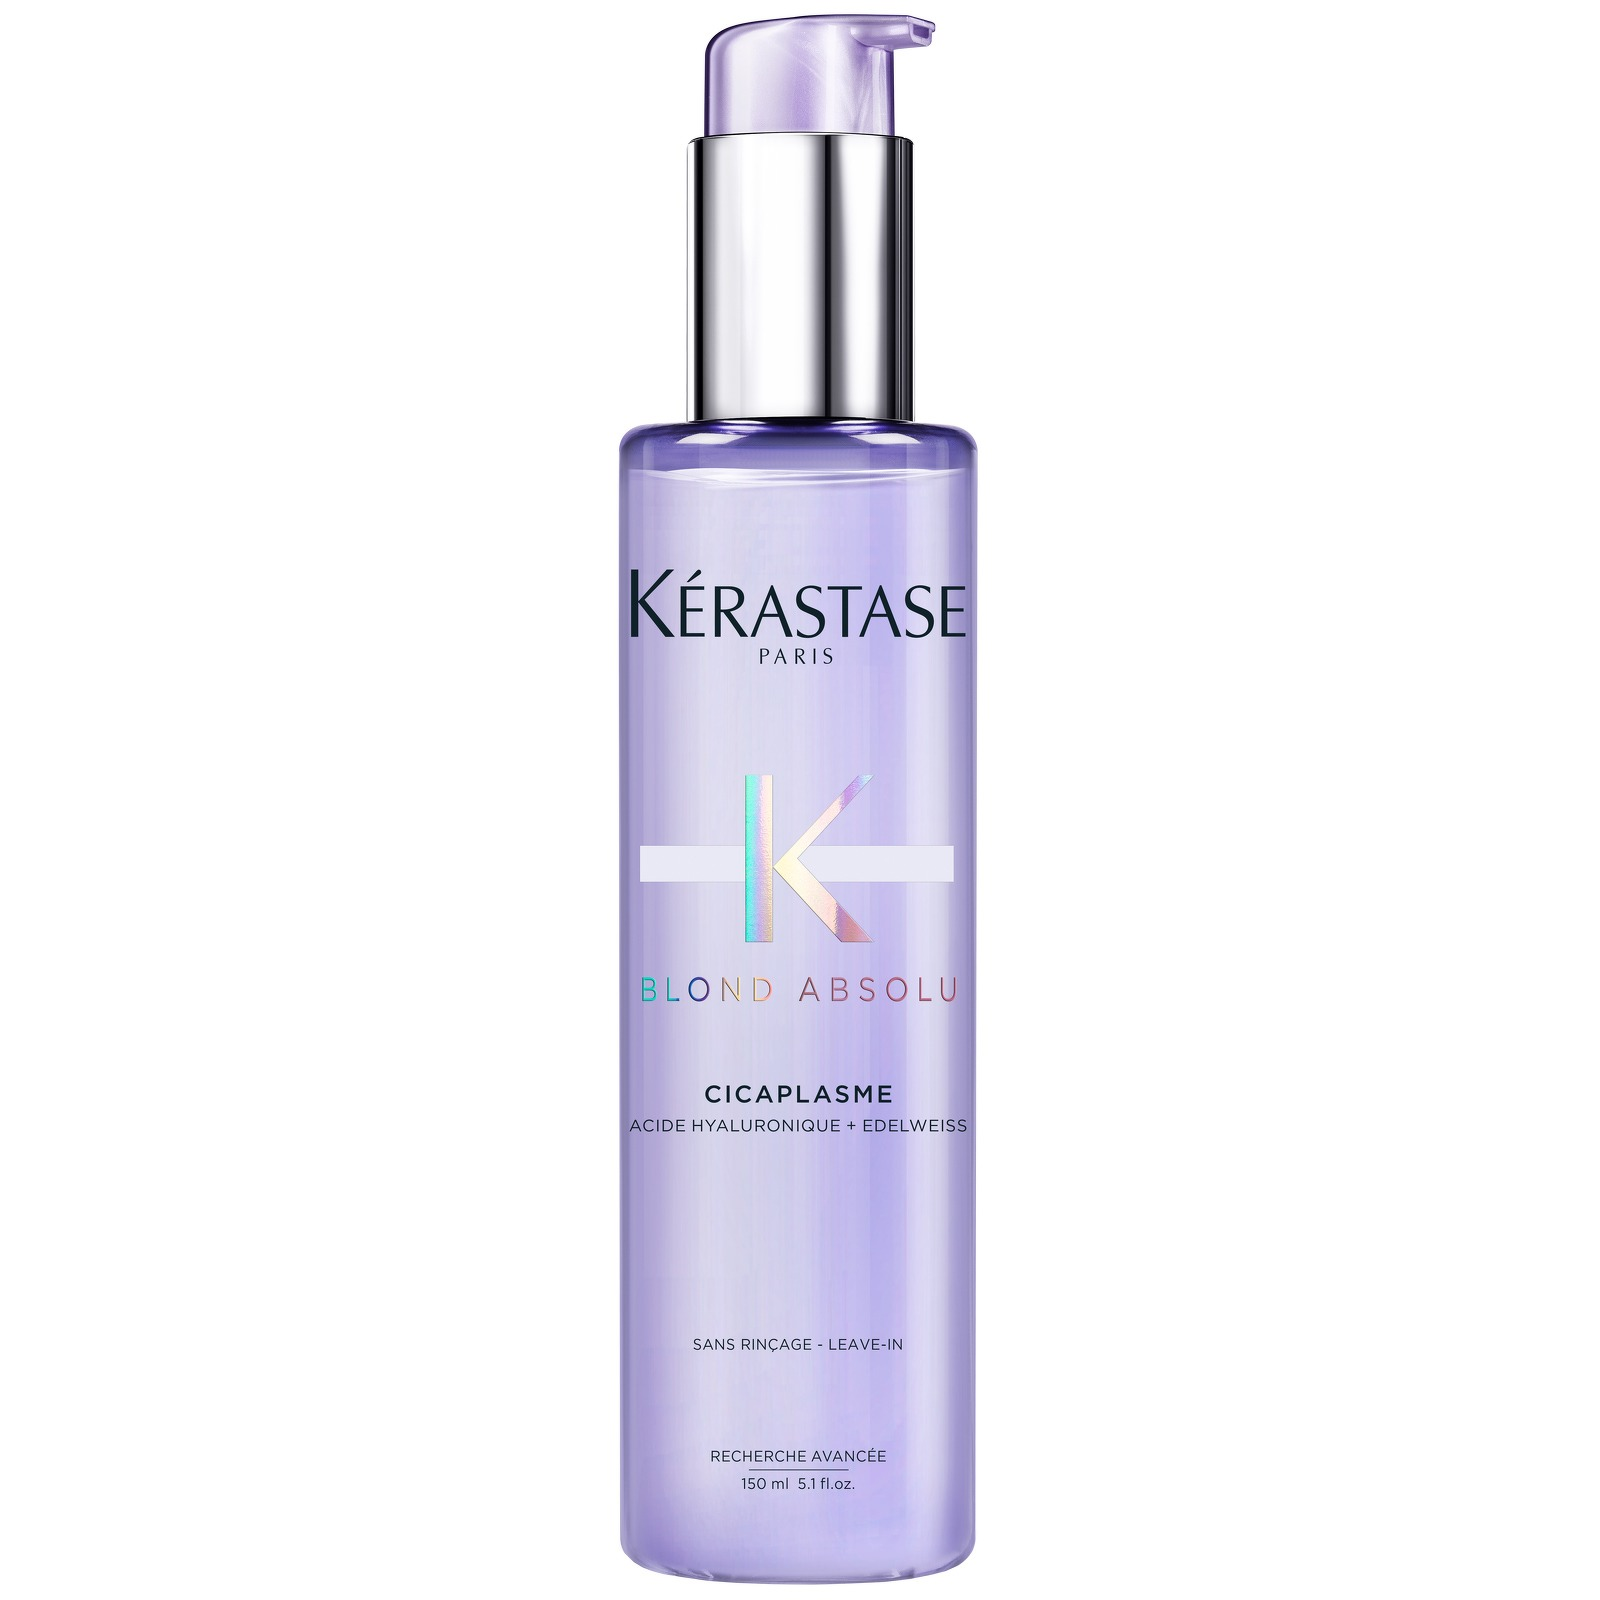 Kérastase Blond Absolu Cicaplasme Thermal Protector 150ml